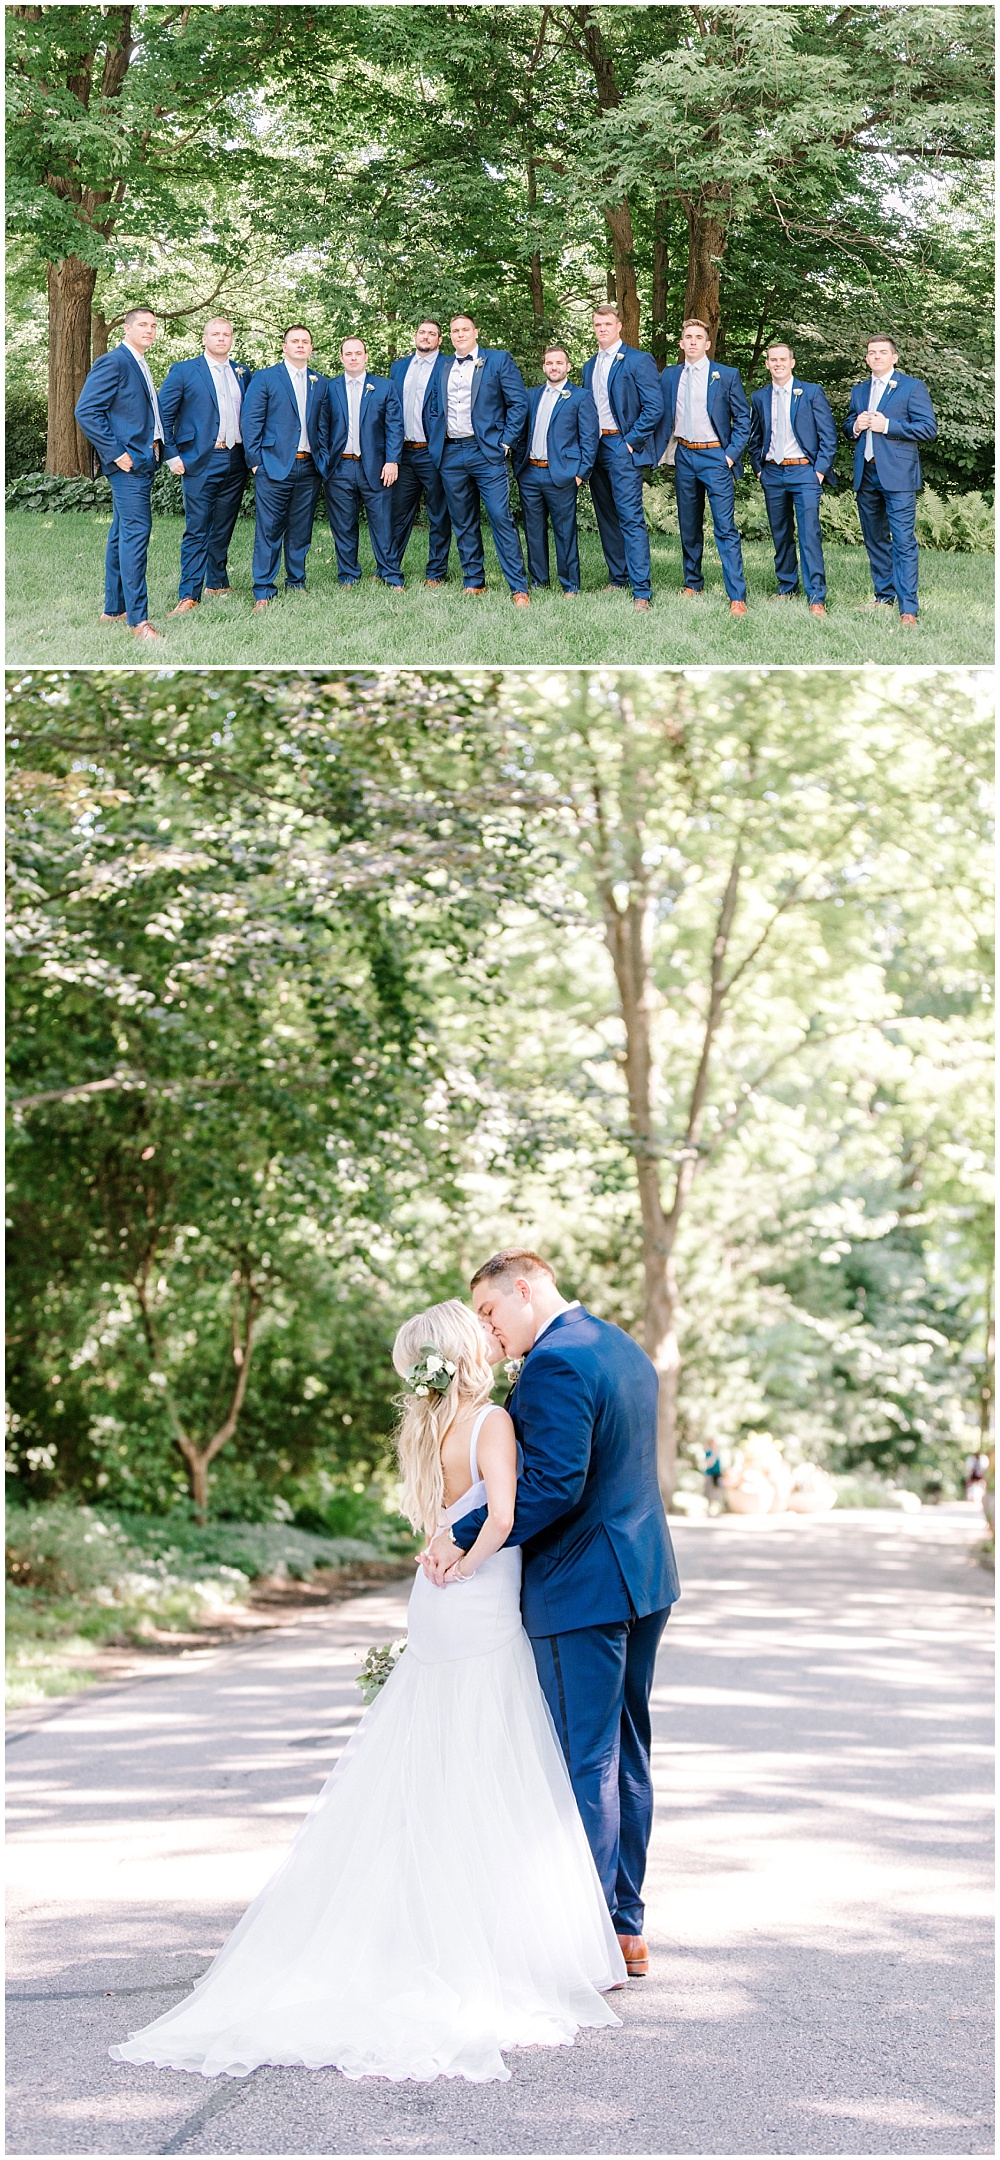 Bride and groom garden portraits; navy groomsmen suits | NFL Player Nick Martin's rustic chic summer wedding at the Biltwell Event Center